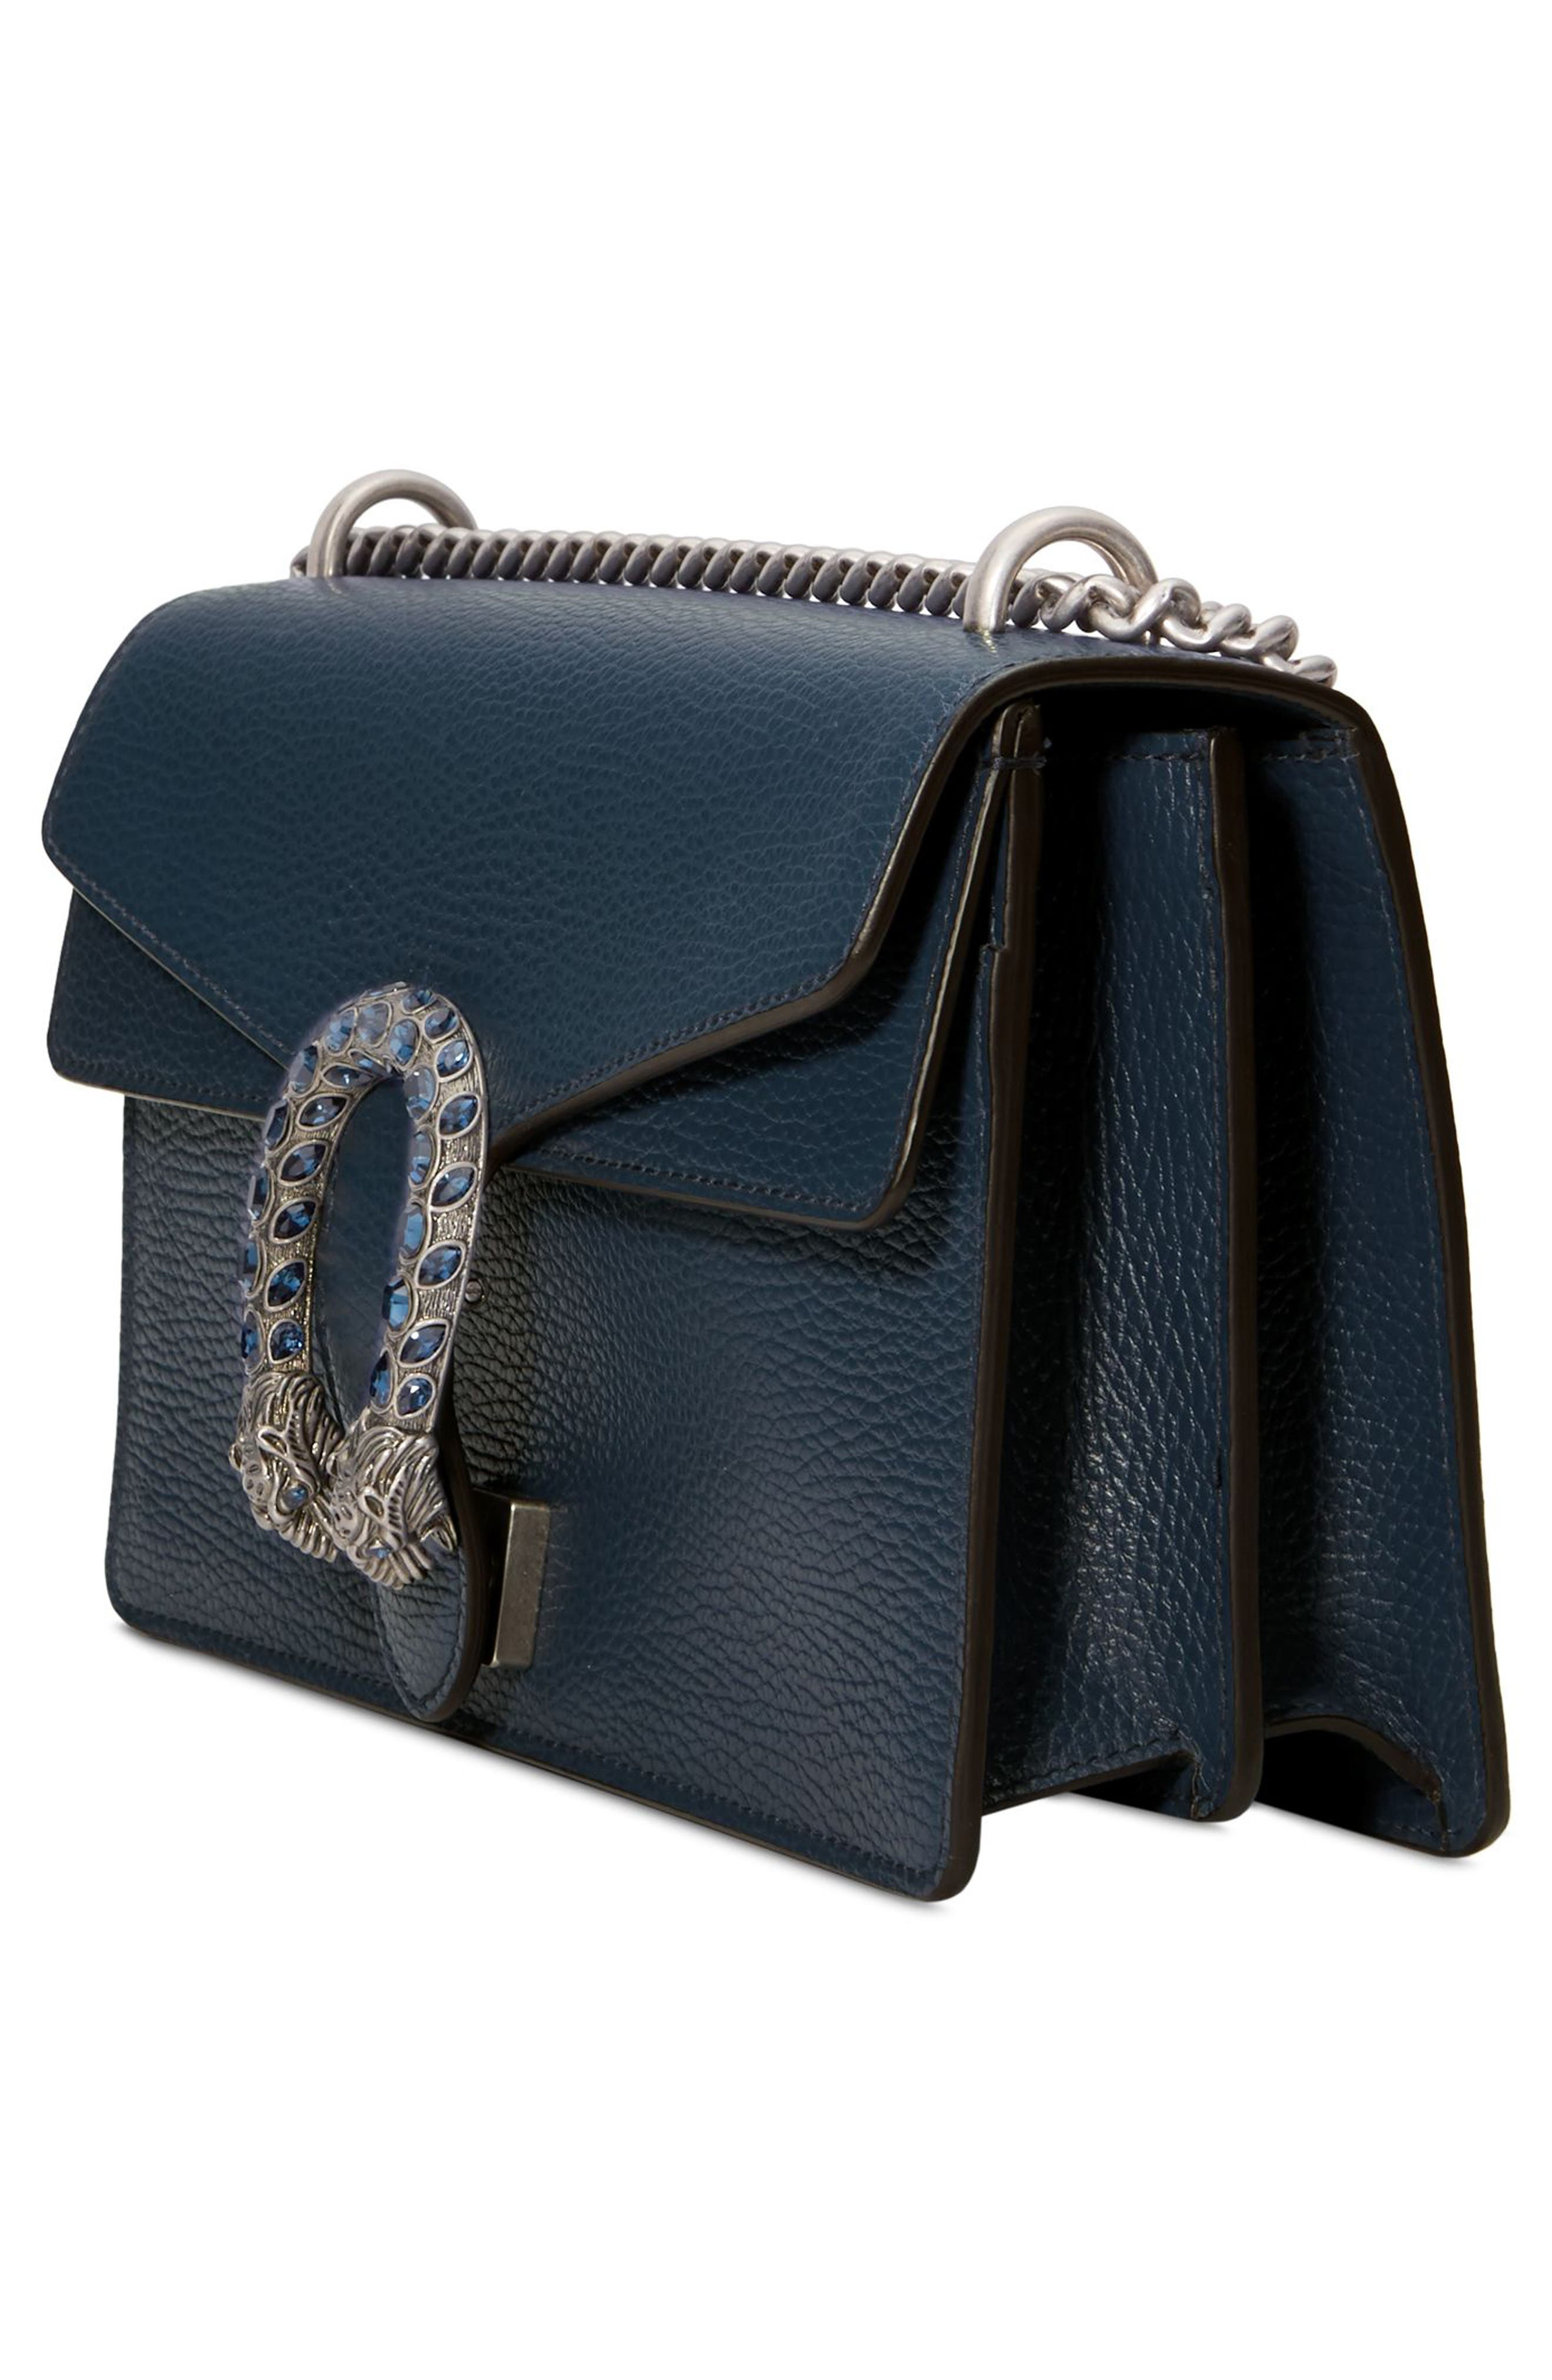 Small Dionysus Leather Shoulder Bag,                             Alternate thumbnail 4, color,                             BLU AGATA/ MONTANA